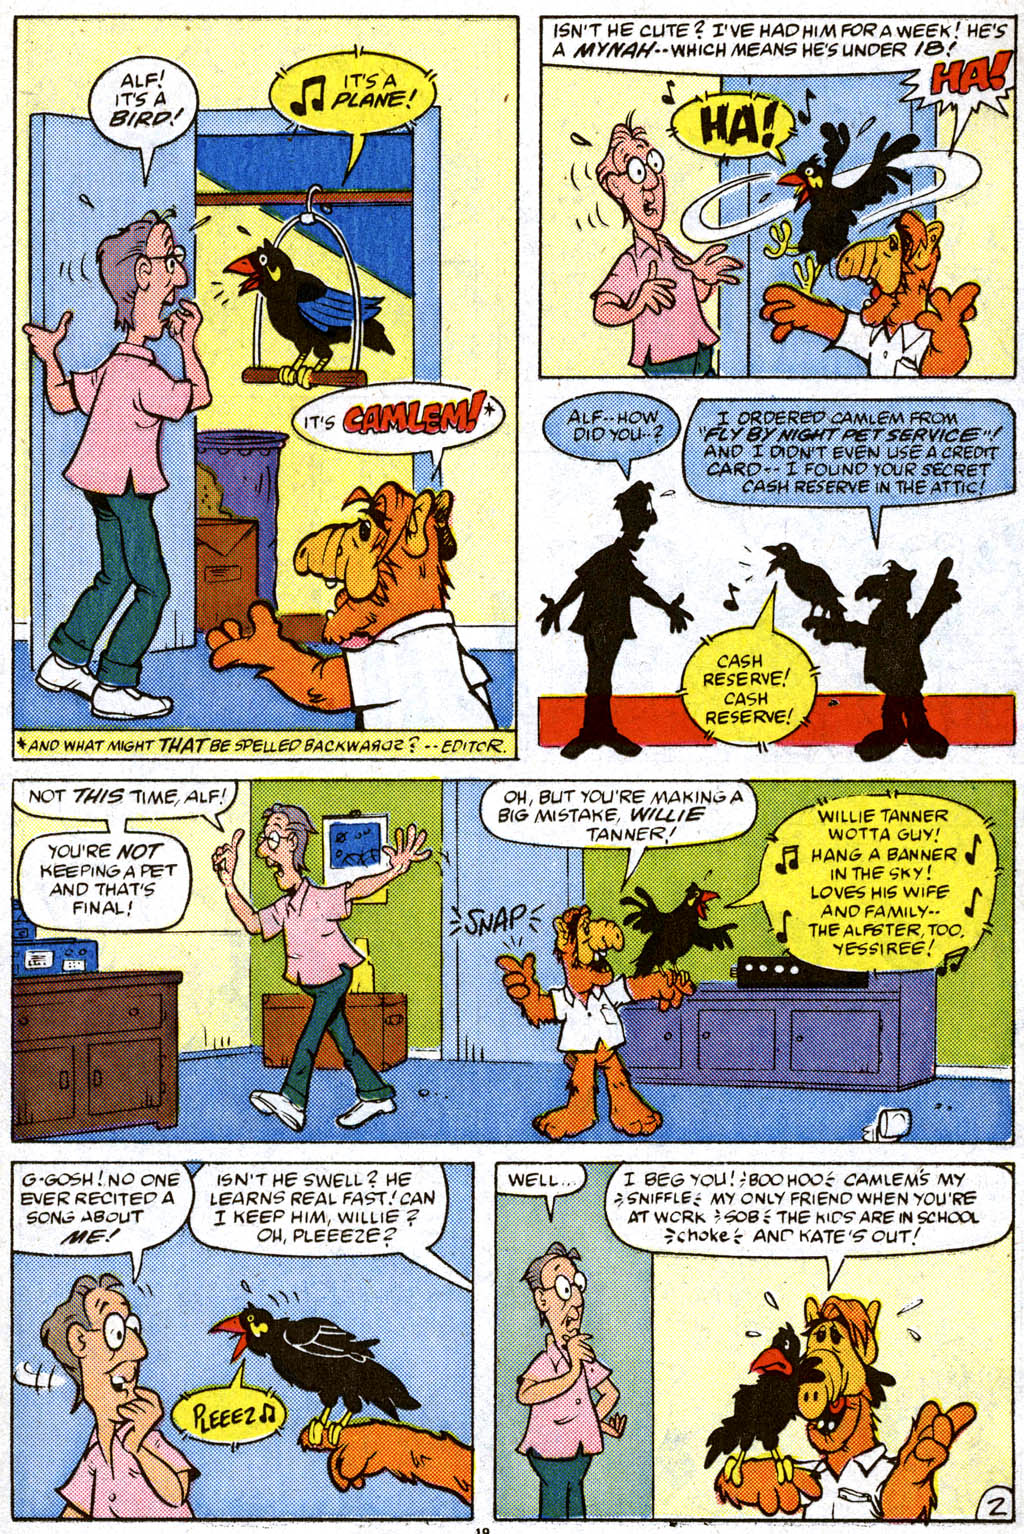 Read online ALF comic -  Issue #11 - 15